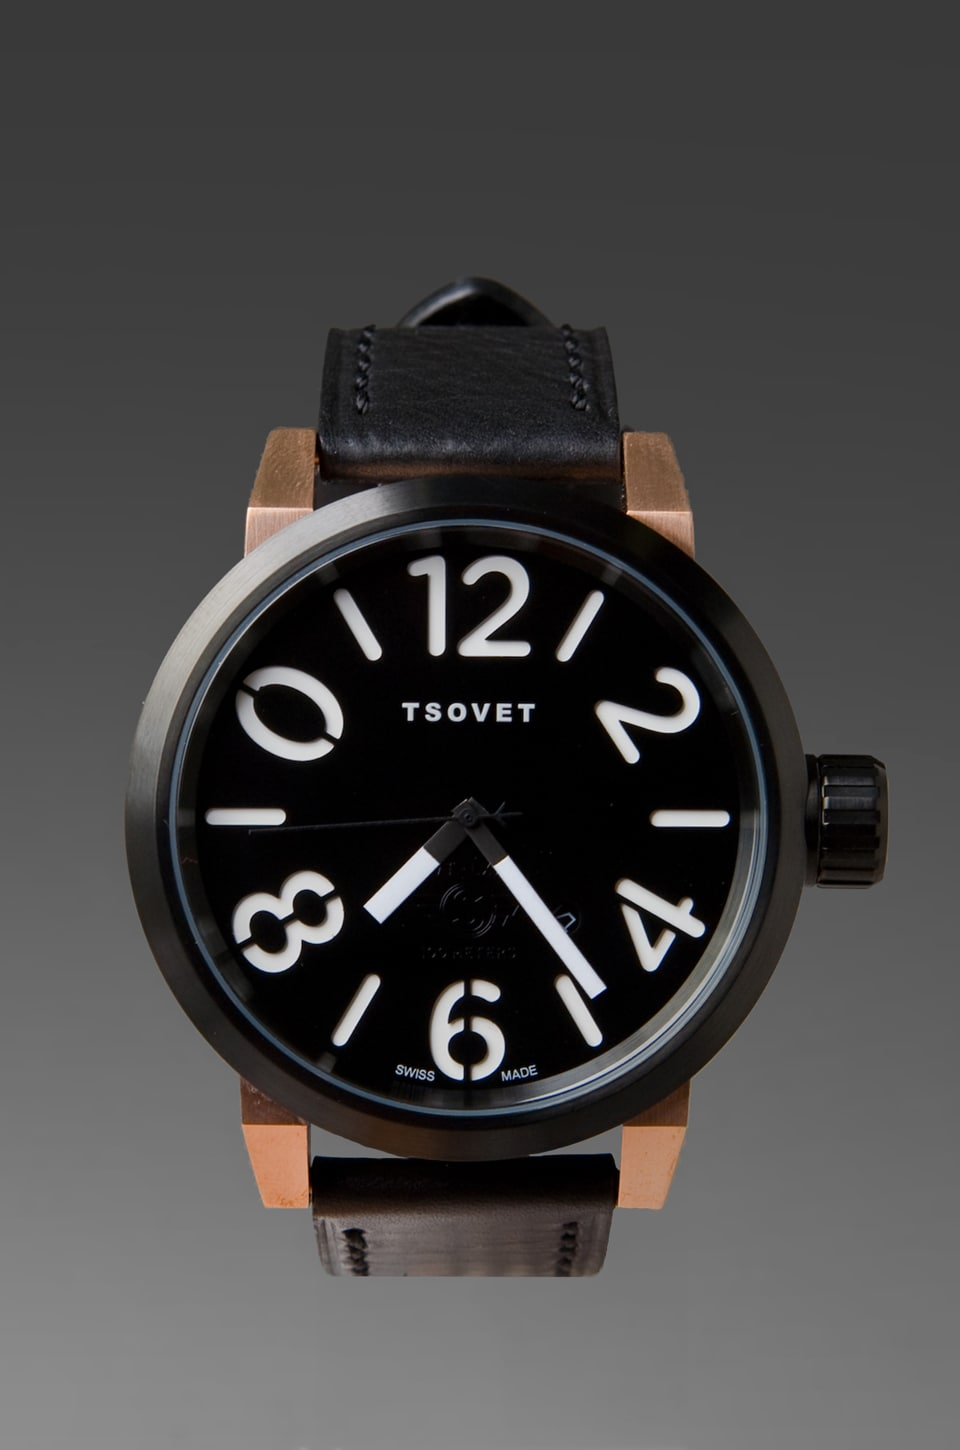 Tsovet SVT-LX73 in Black/Rose Gold